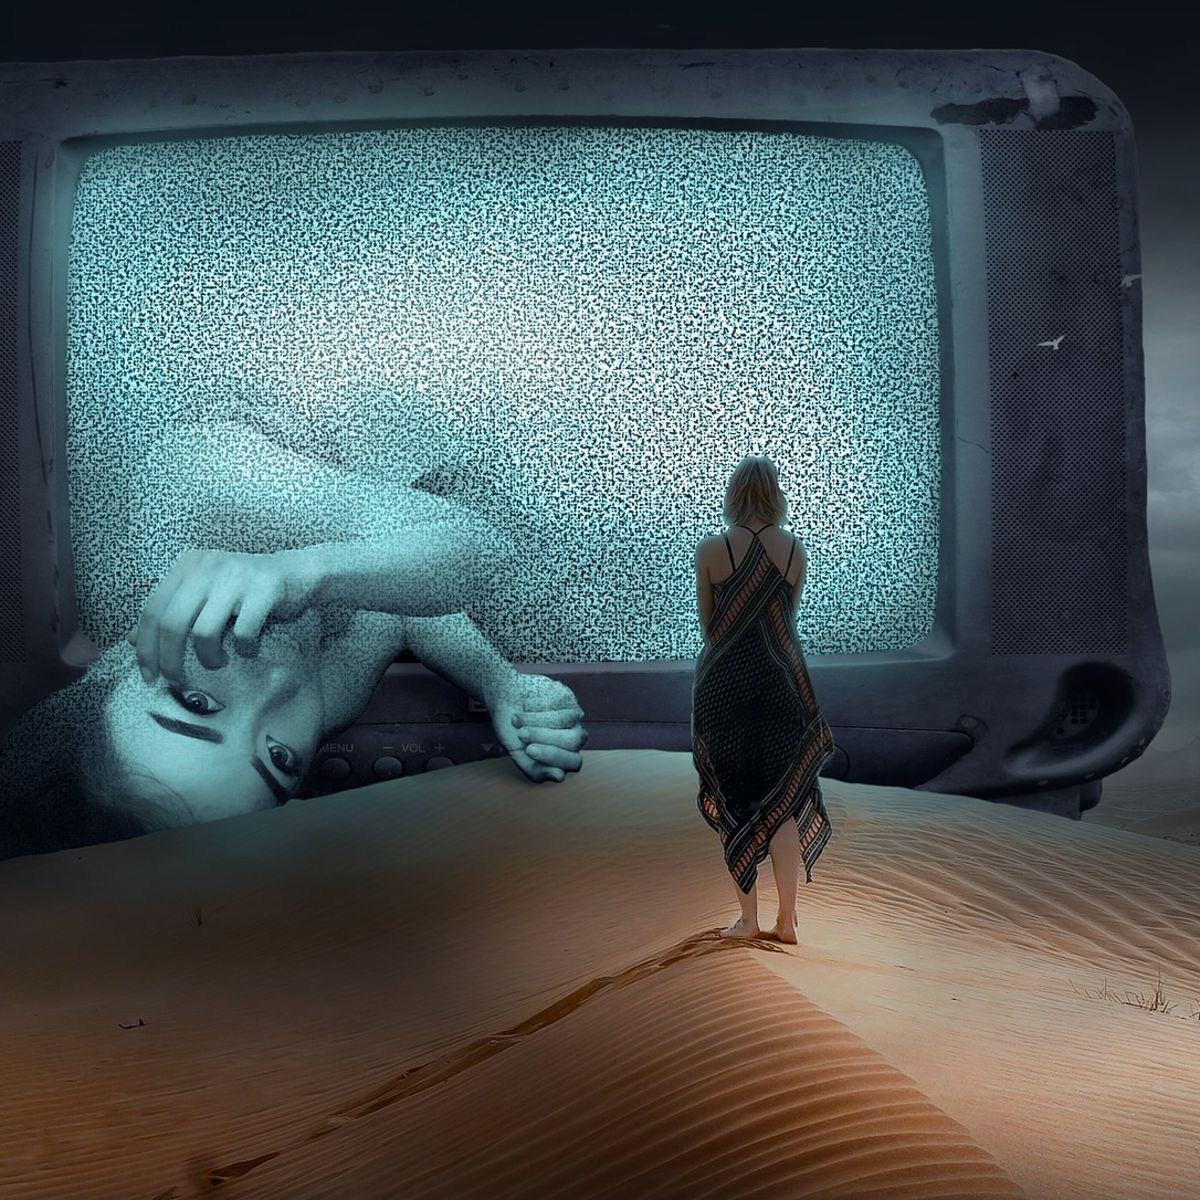 Dreamy scence: Woman walking on desert-sand into huge TV